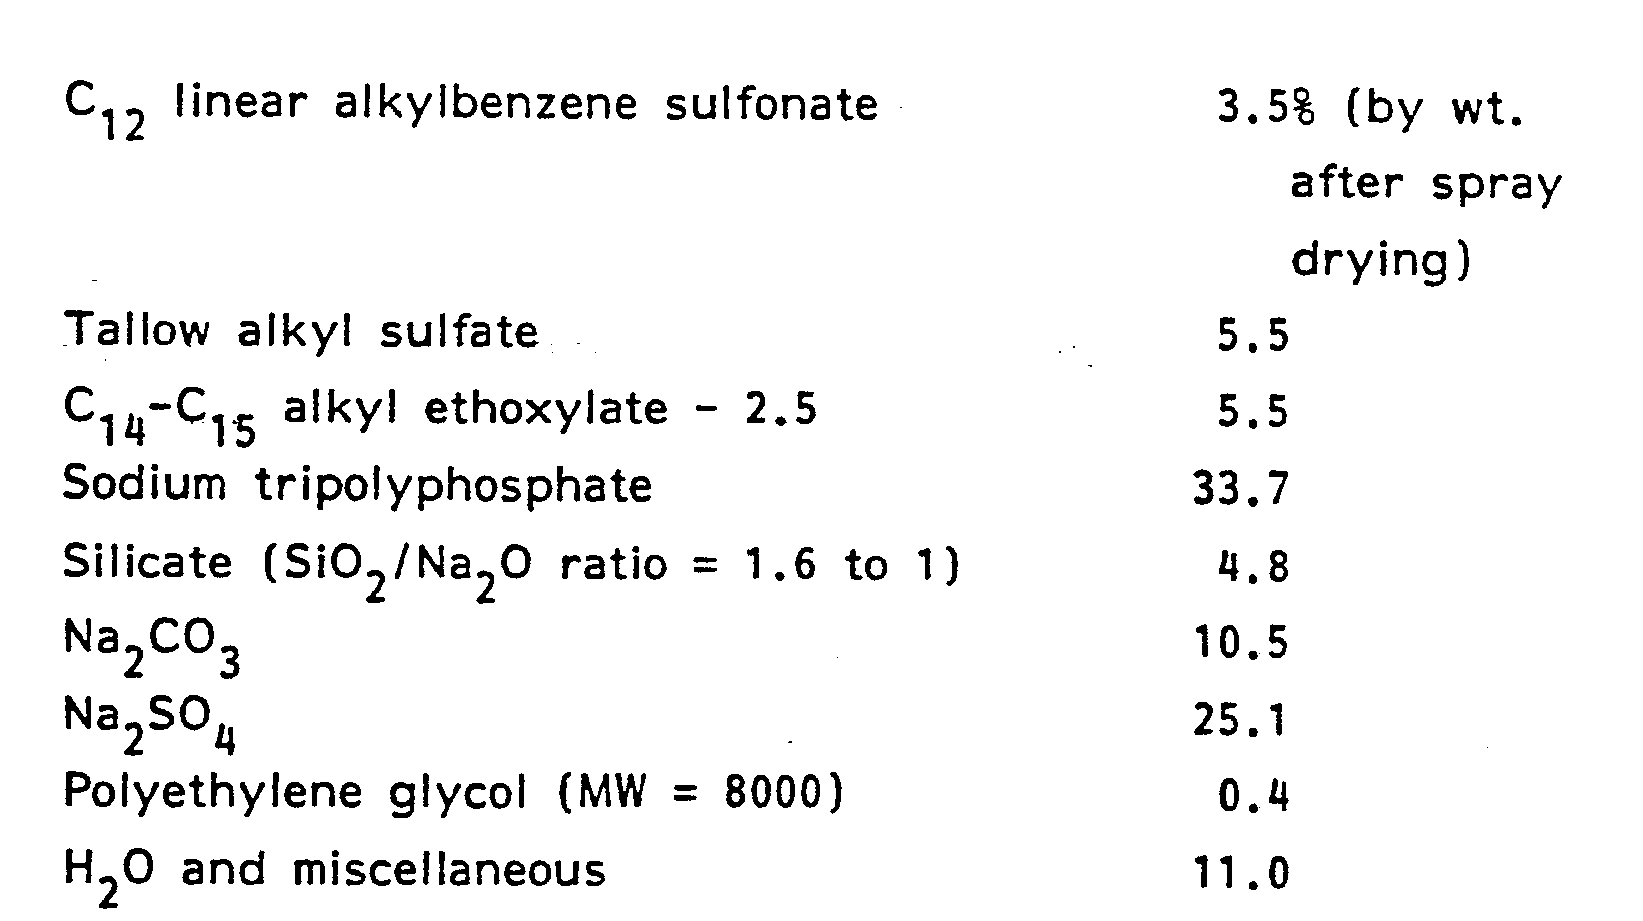 EP0267653A2 - Detergent composition containing